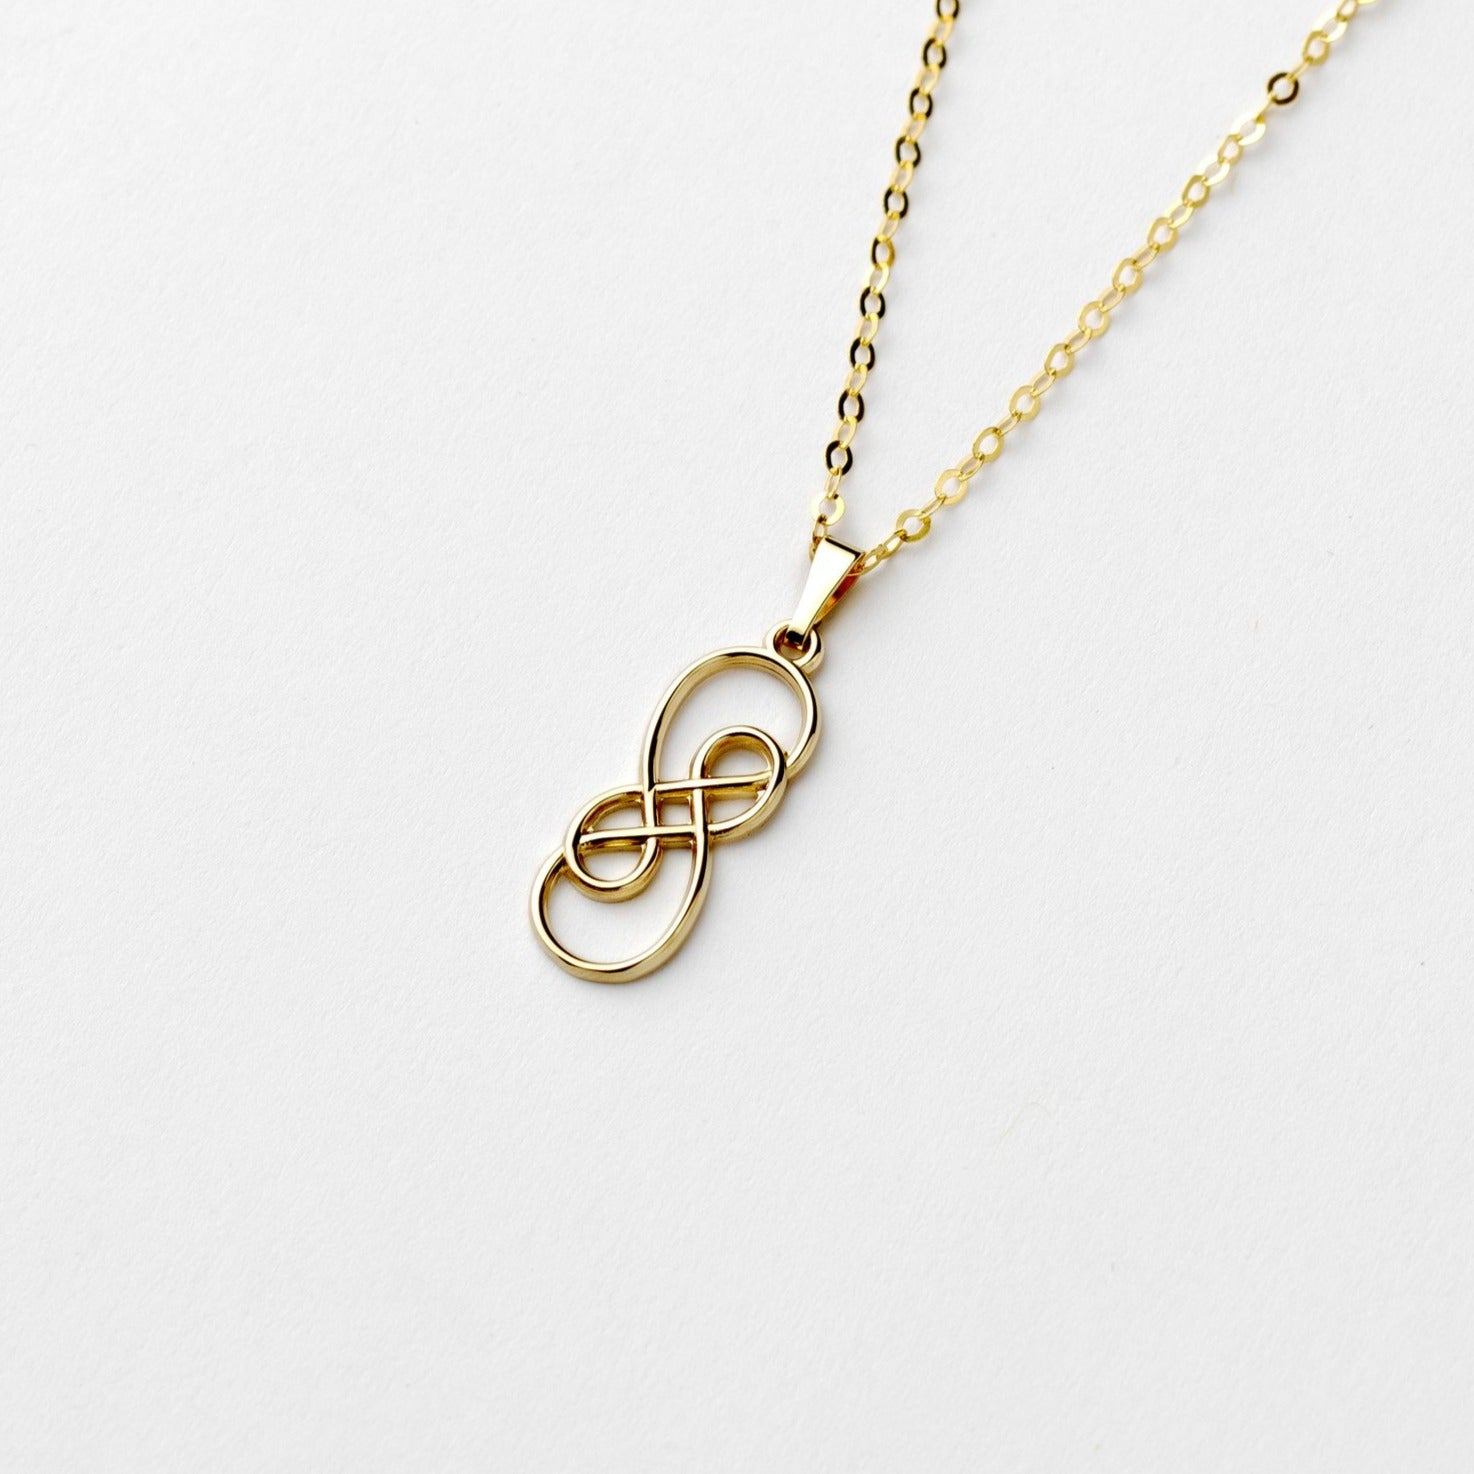 knot co pendant necklace tiffany necklaces and products enlarged jewelry